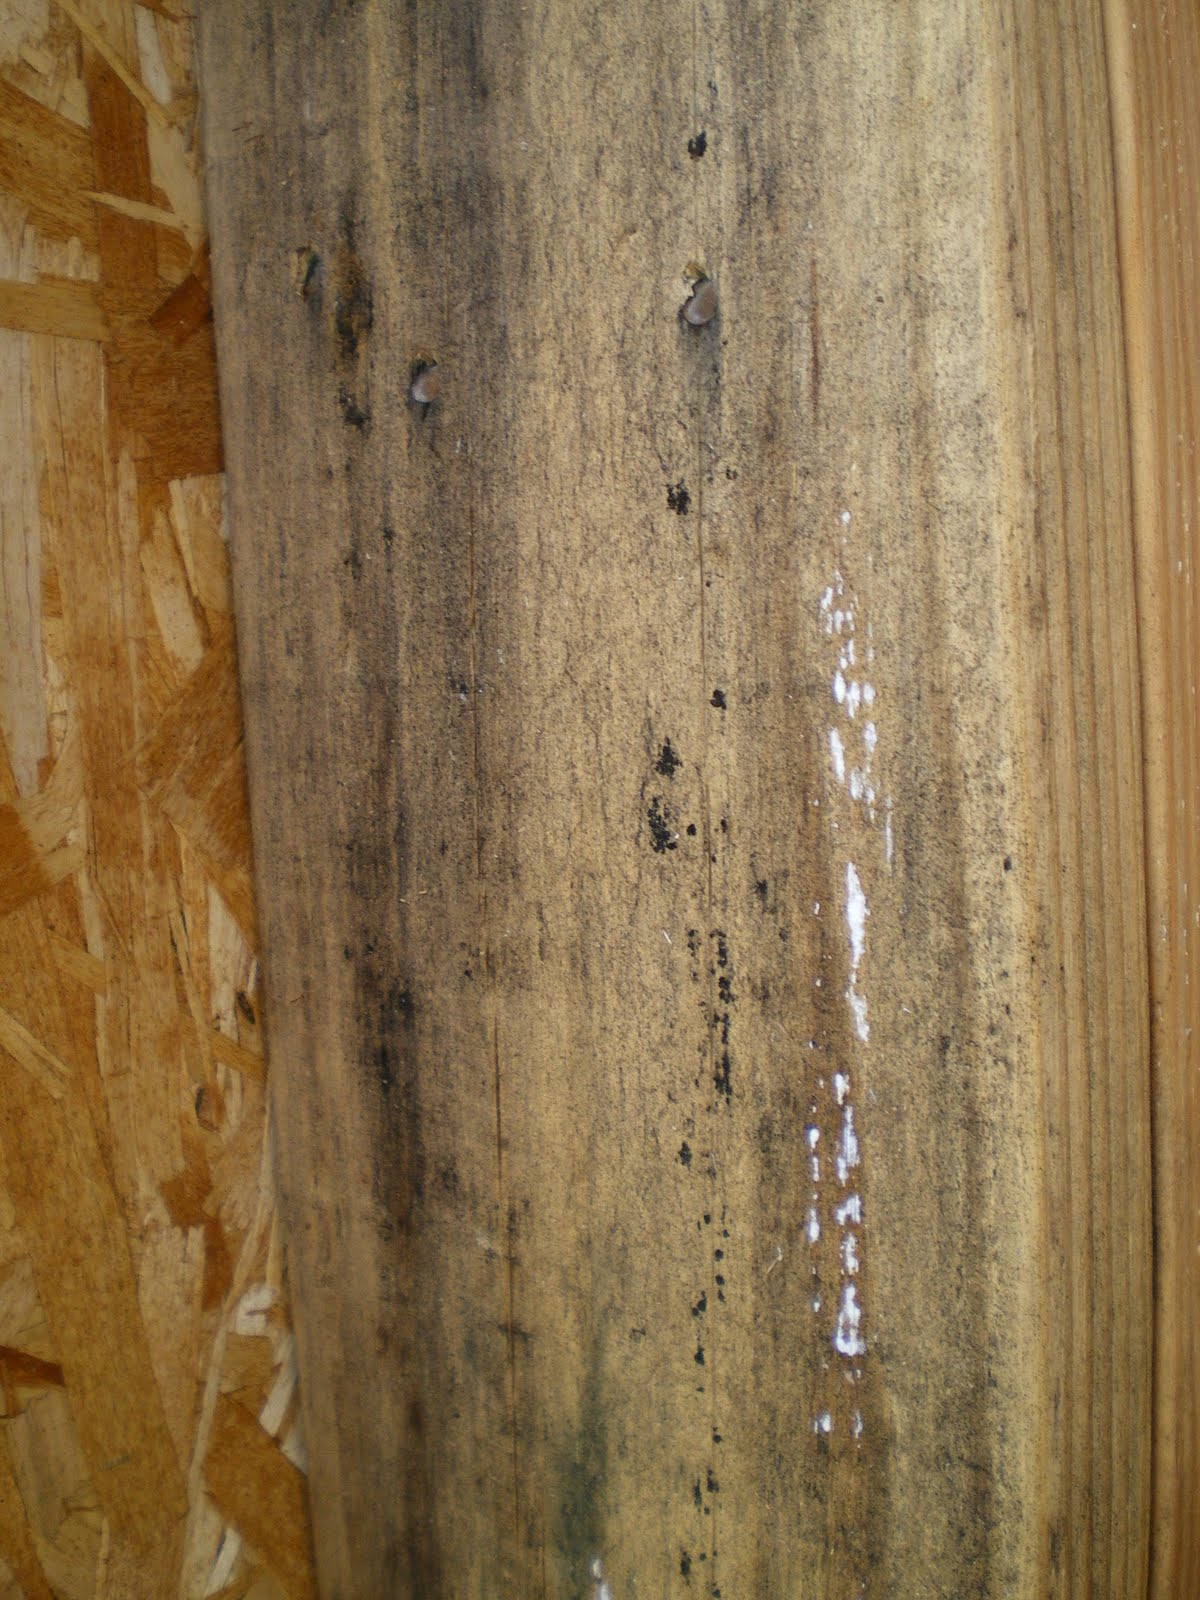 Local Fruit: Lumber Mold